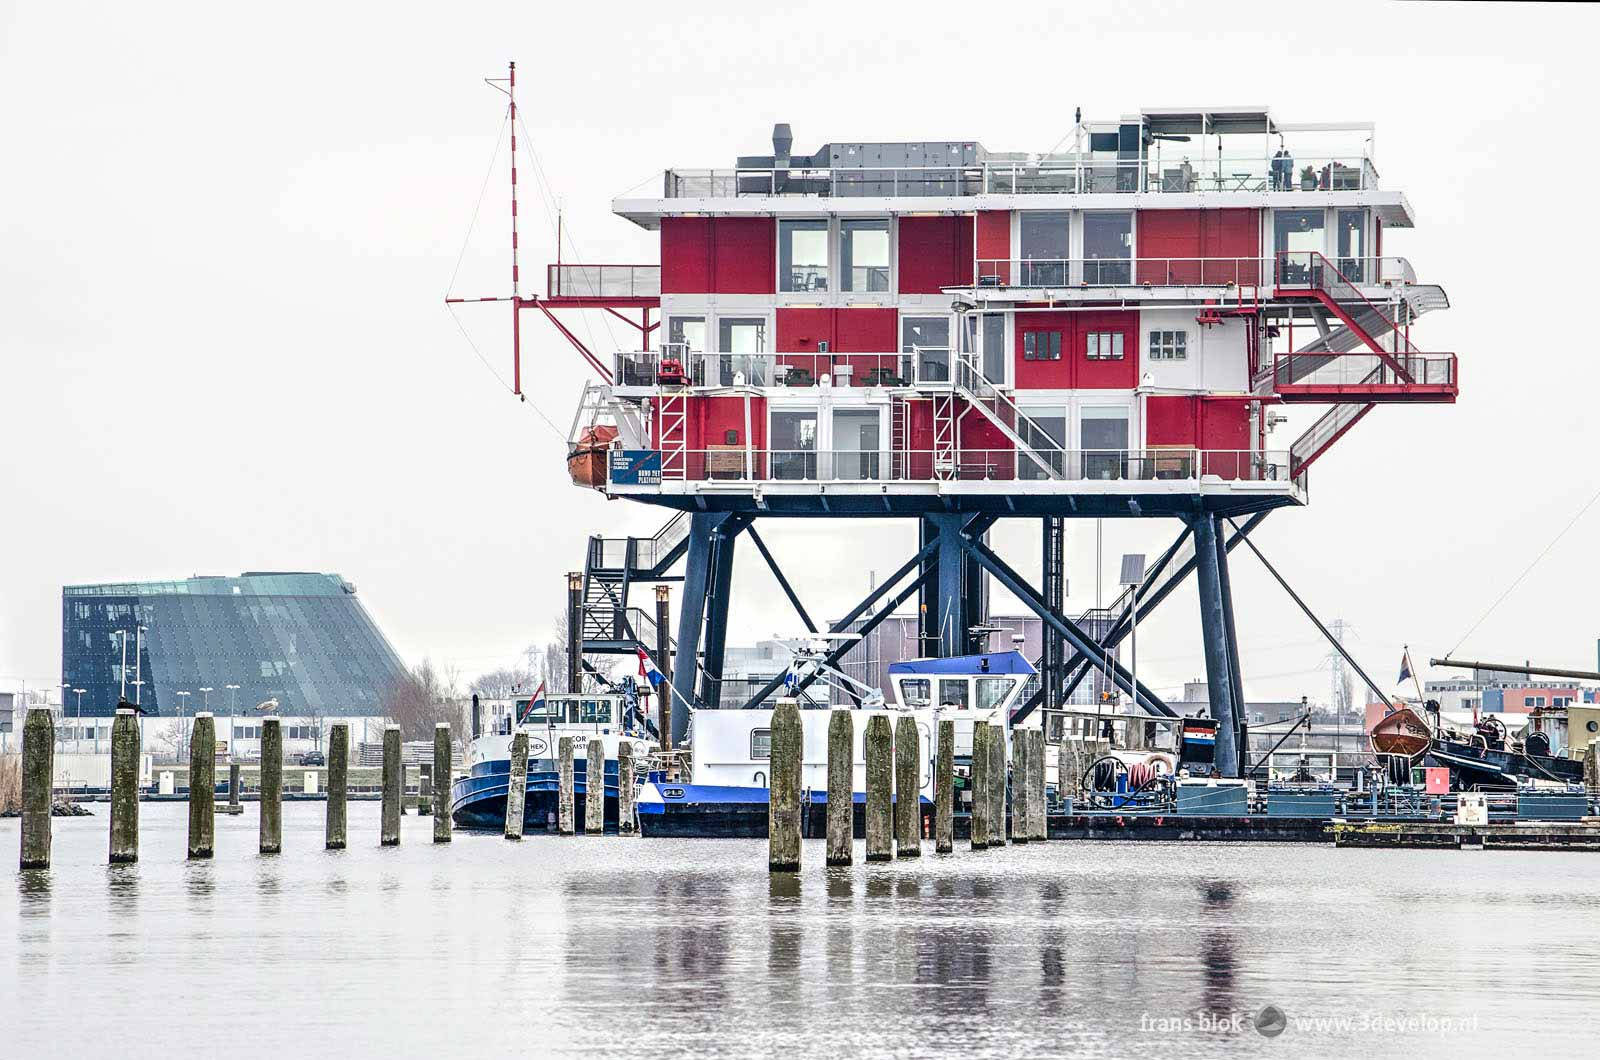 Former drilling platform and pirate station REM island, now docked in Houthavens in Amsterdam and used as a restaurant